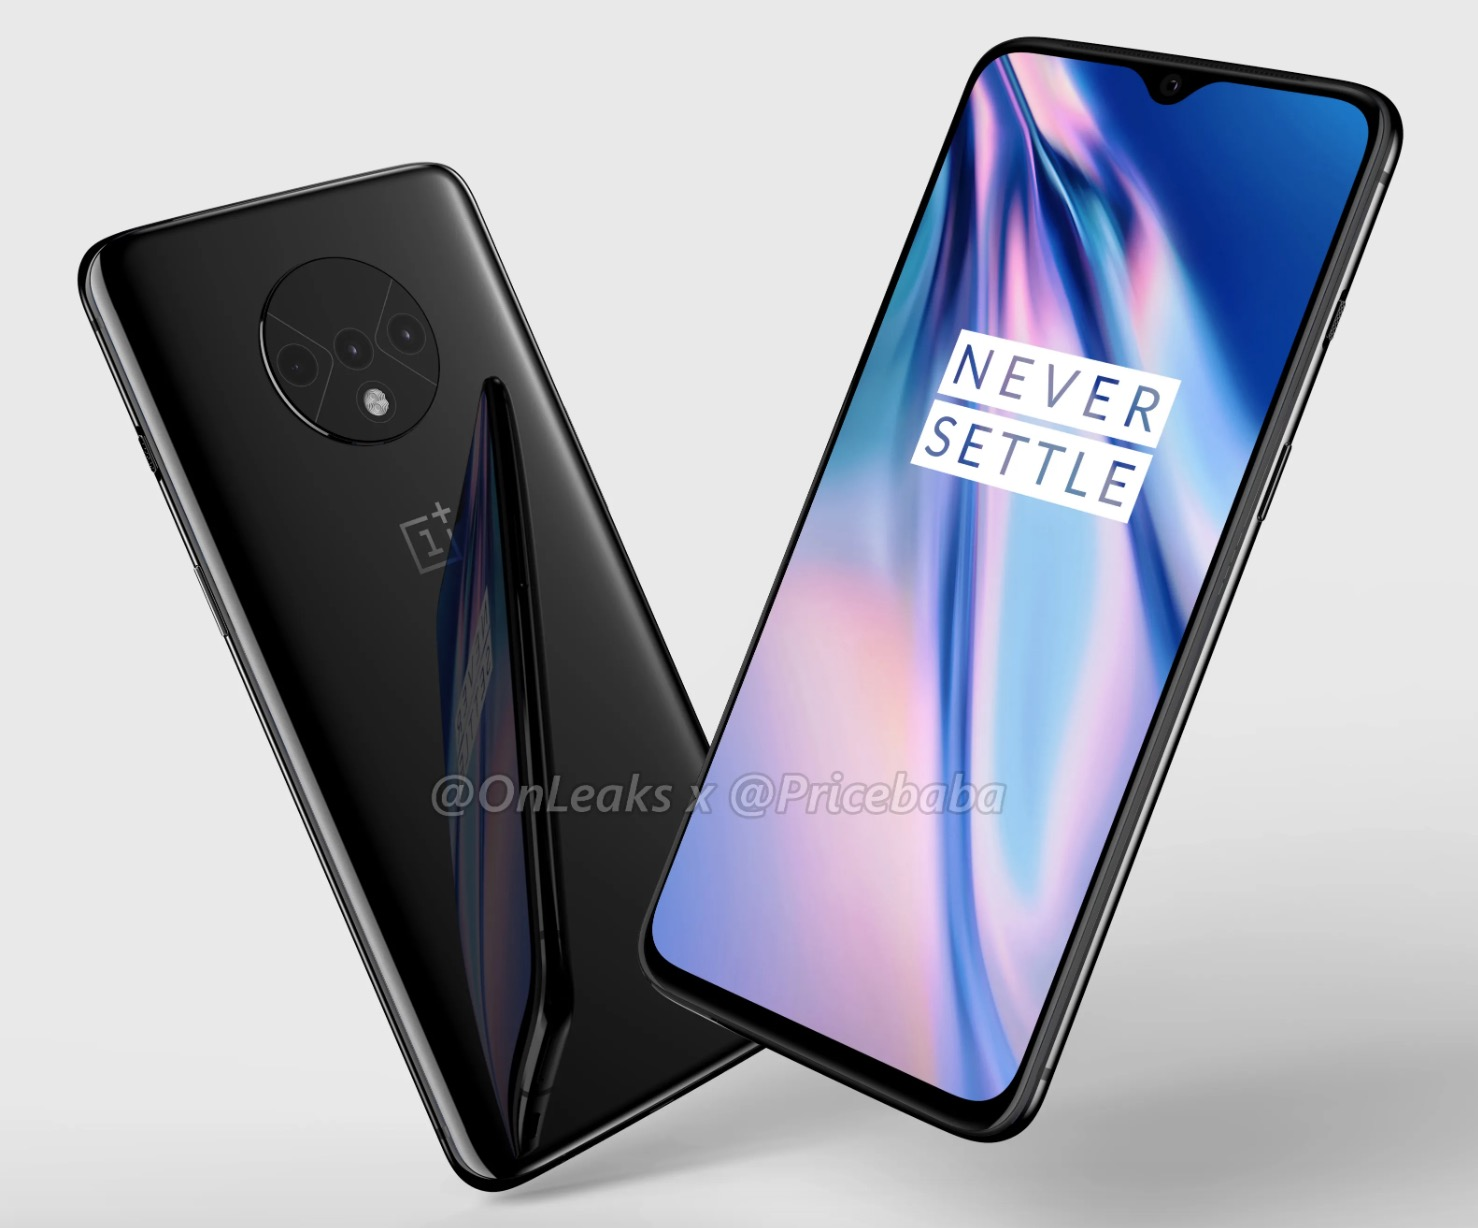 7 Reasons to Wait for the OnePlus 7T & 4 Reasons Not to